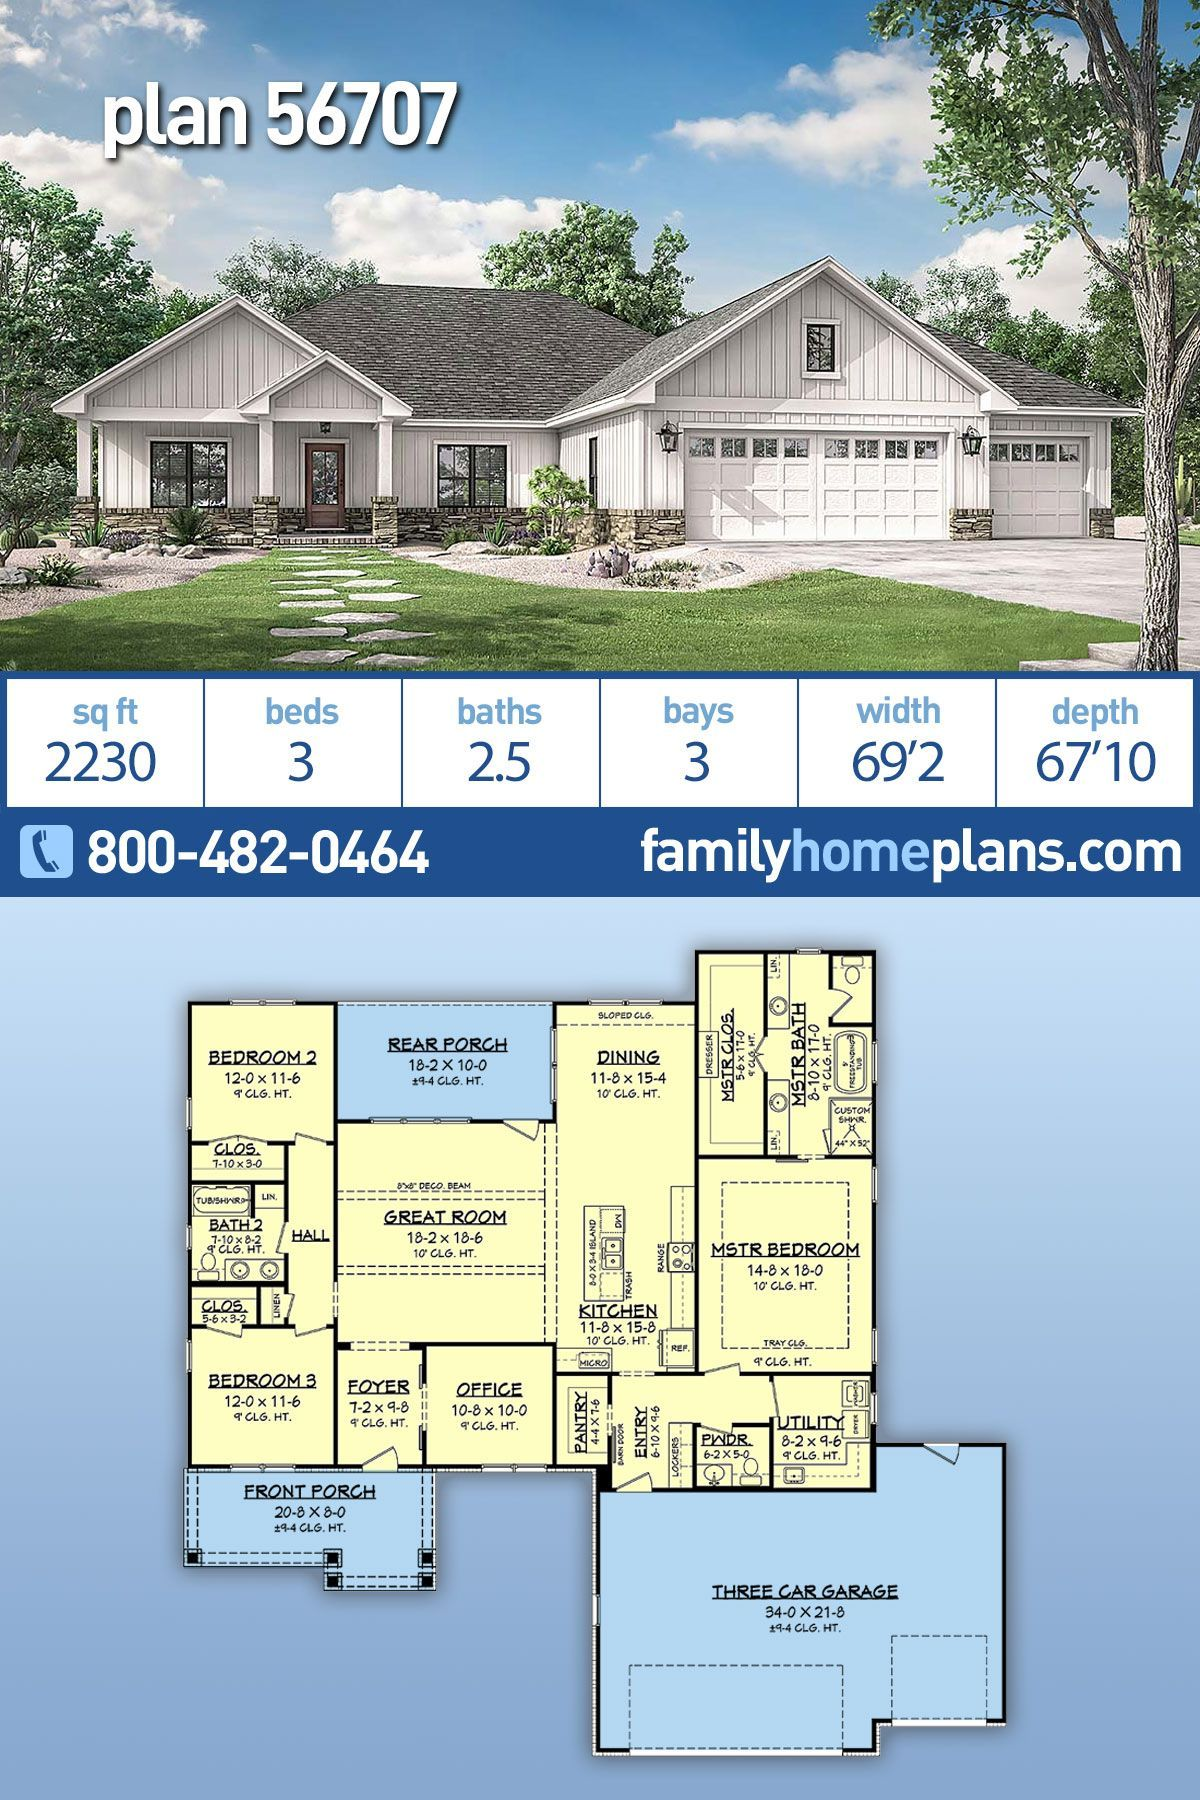 This Is A New House Plan By One Of Our Most Popular Home Designers With 2230 Sq Ft Of Heated Livin Ranch House Plans Ranch Style Homes Ranch Style House Plans